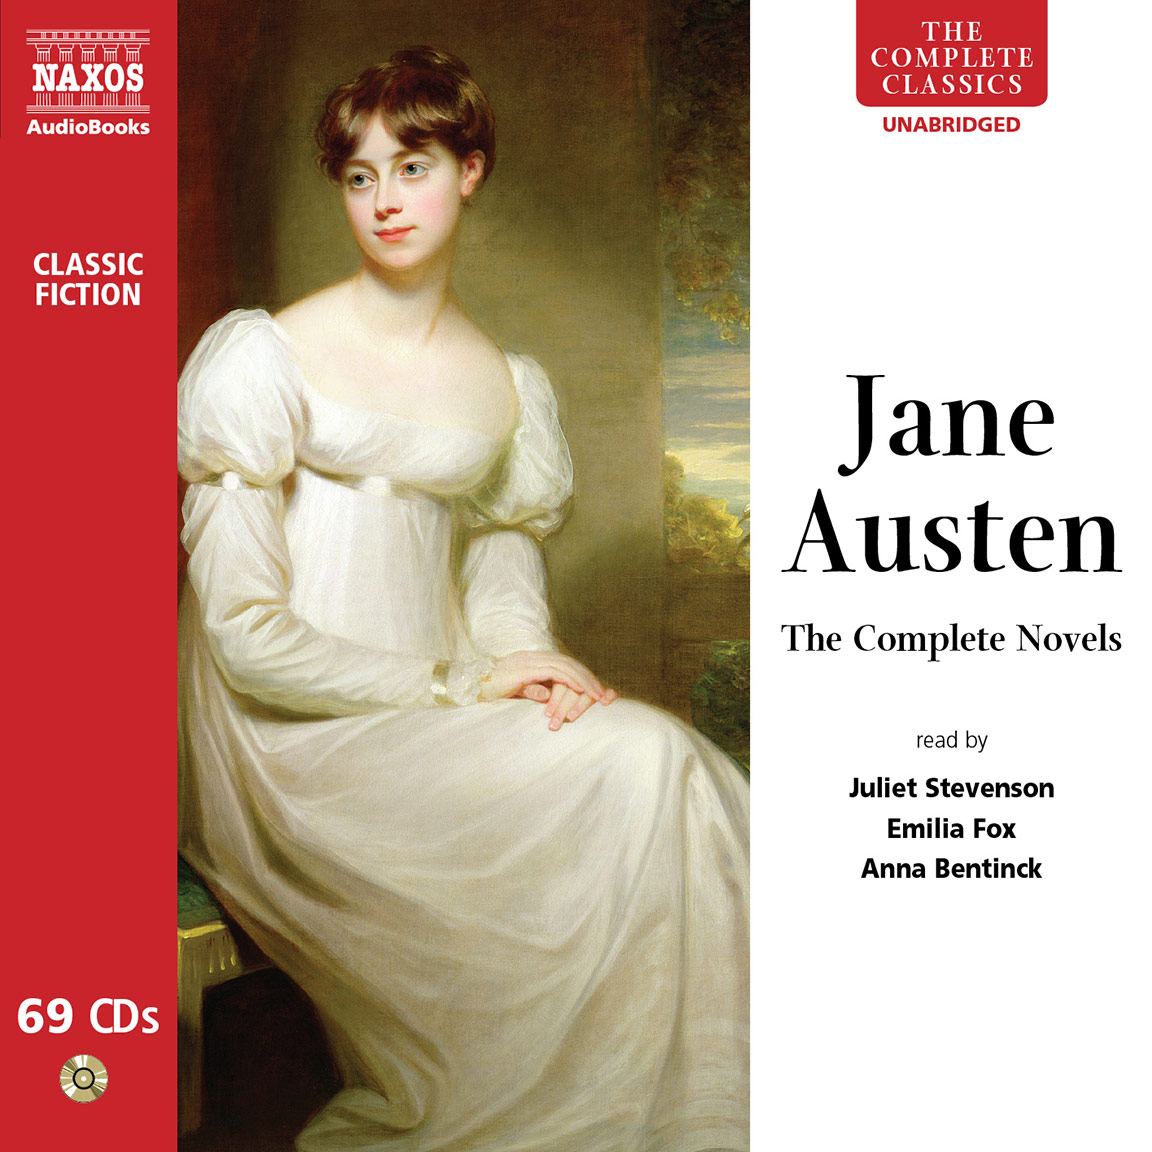 Jane Austen – The Complete Novels (unabridged)